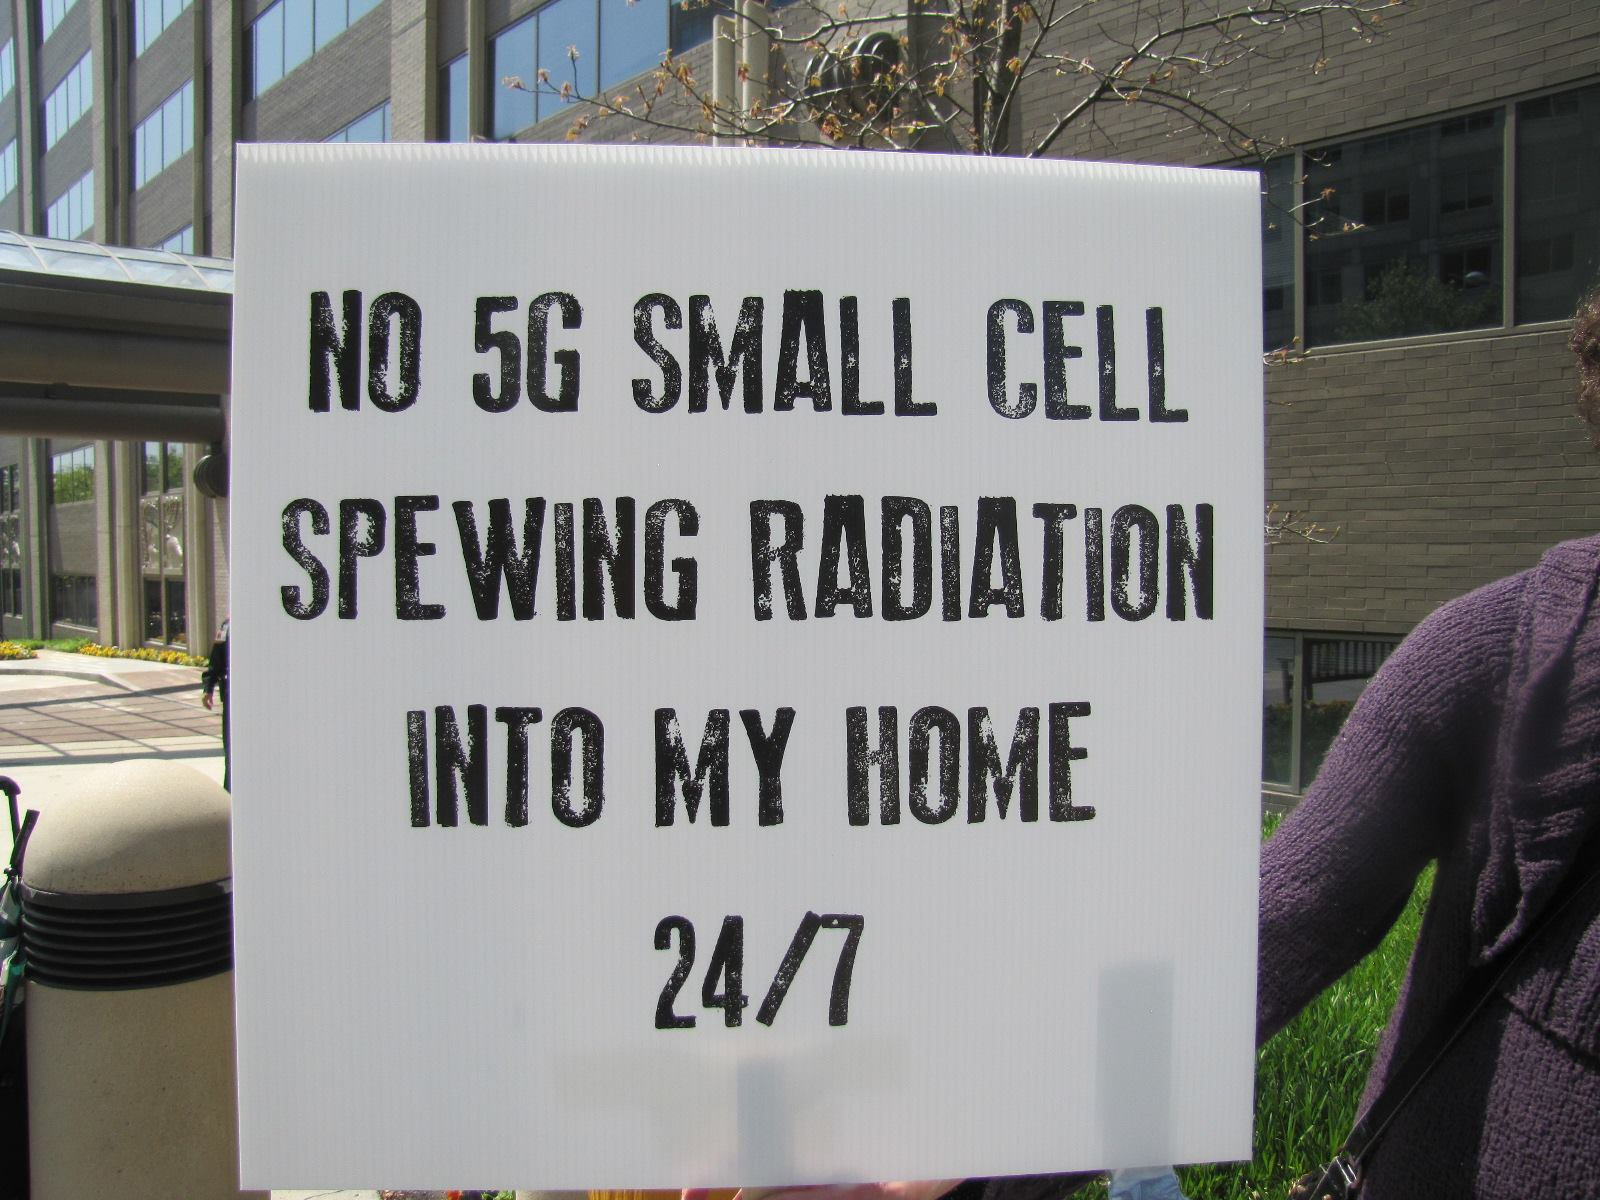 Millimeter Wave Frequency Studies and Reviews - What is 5G